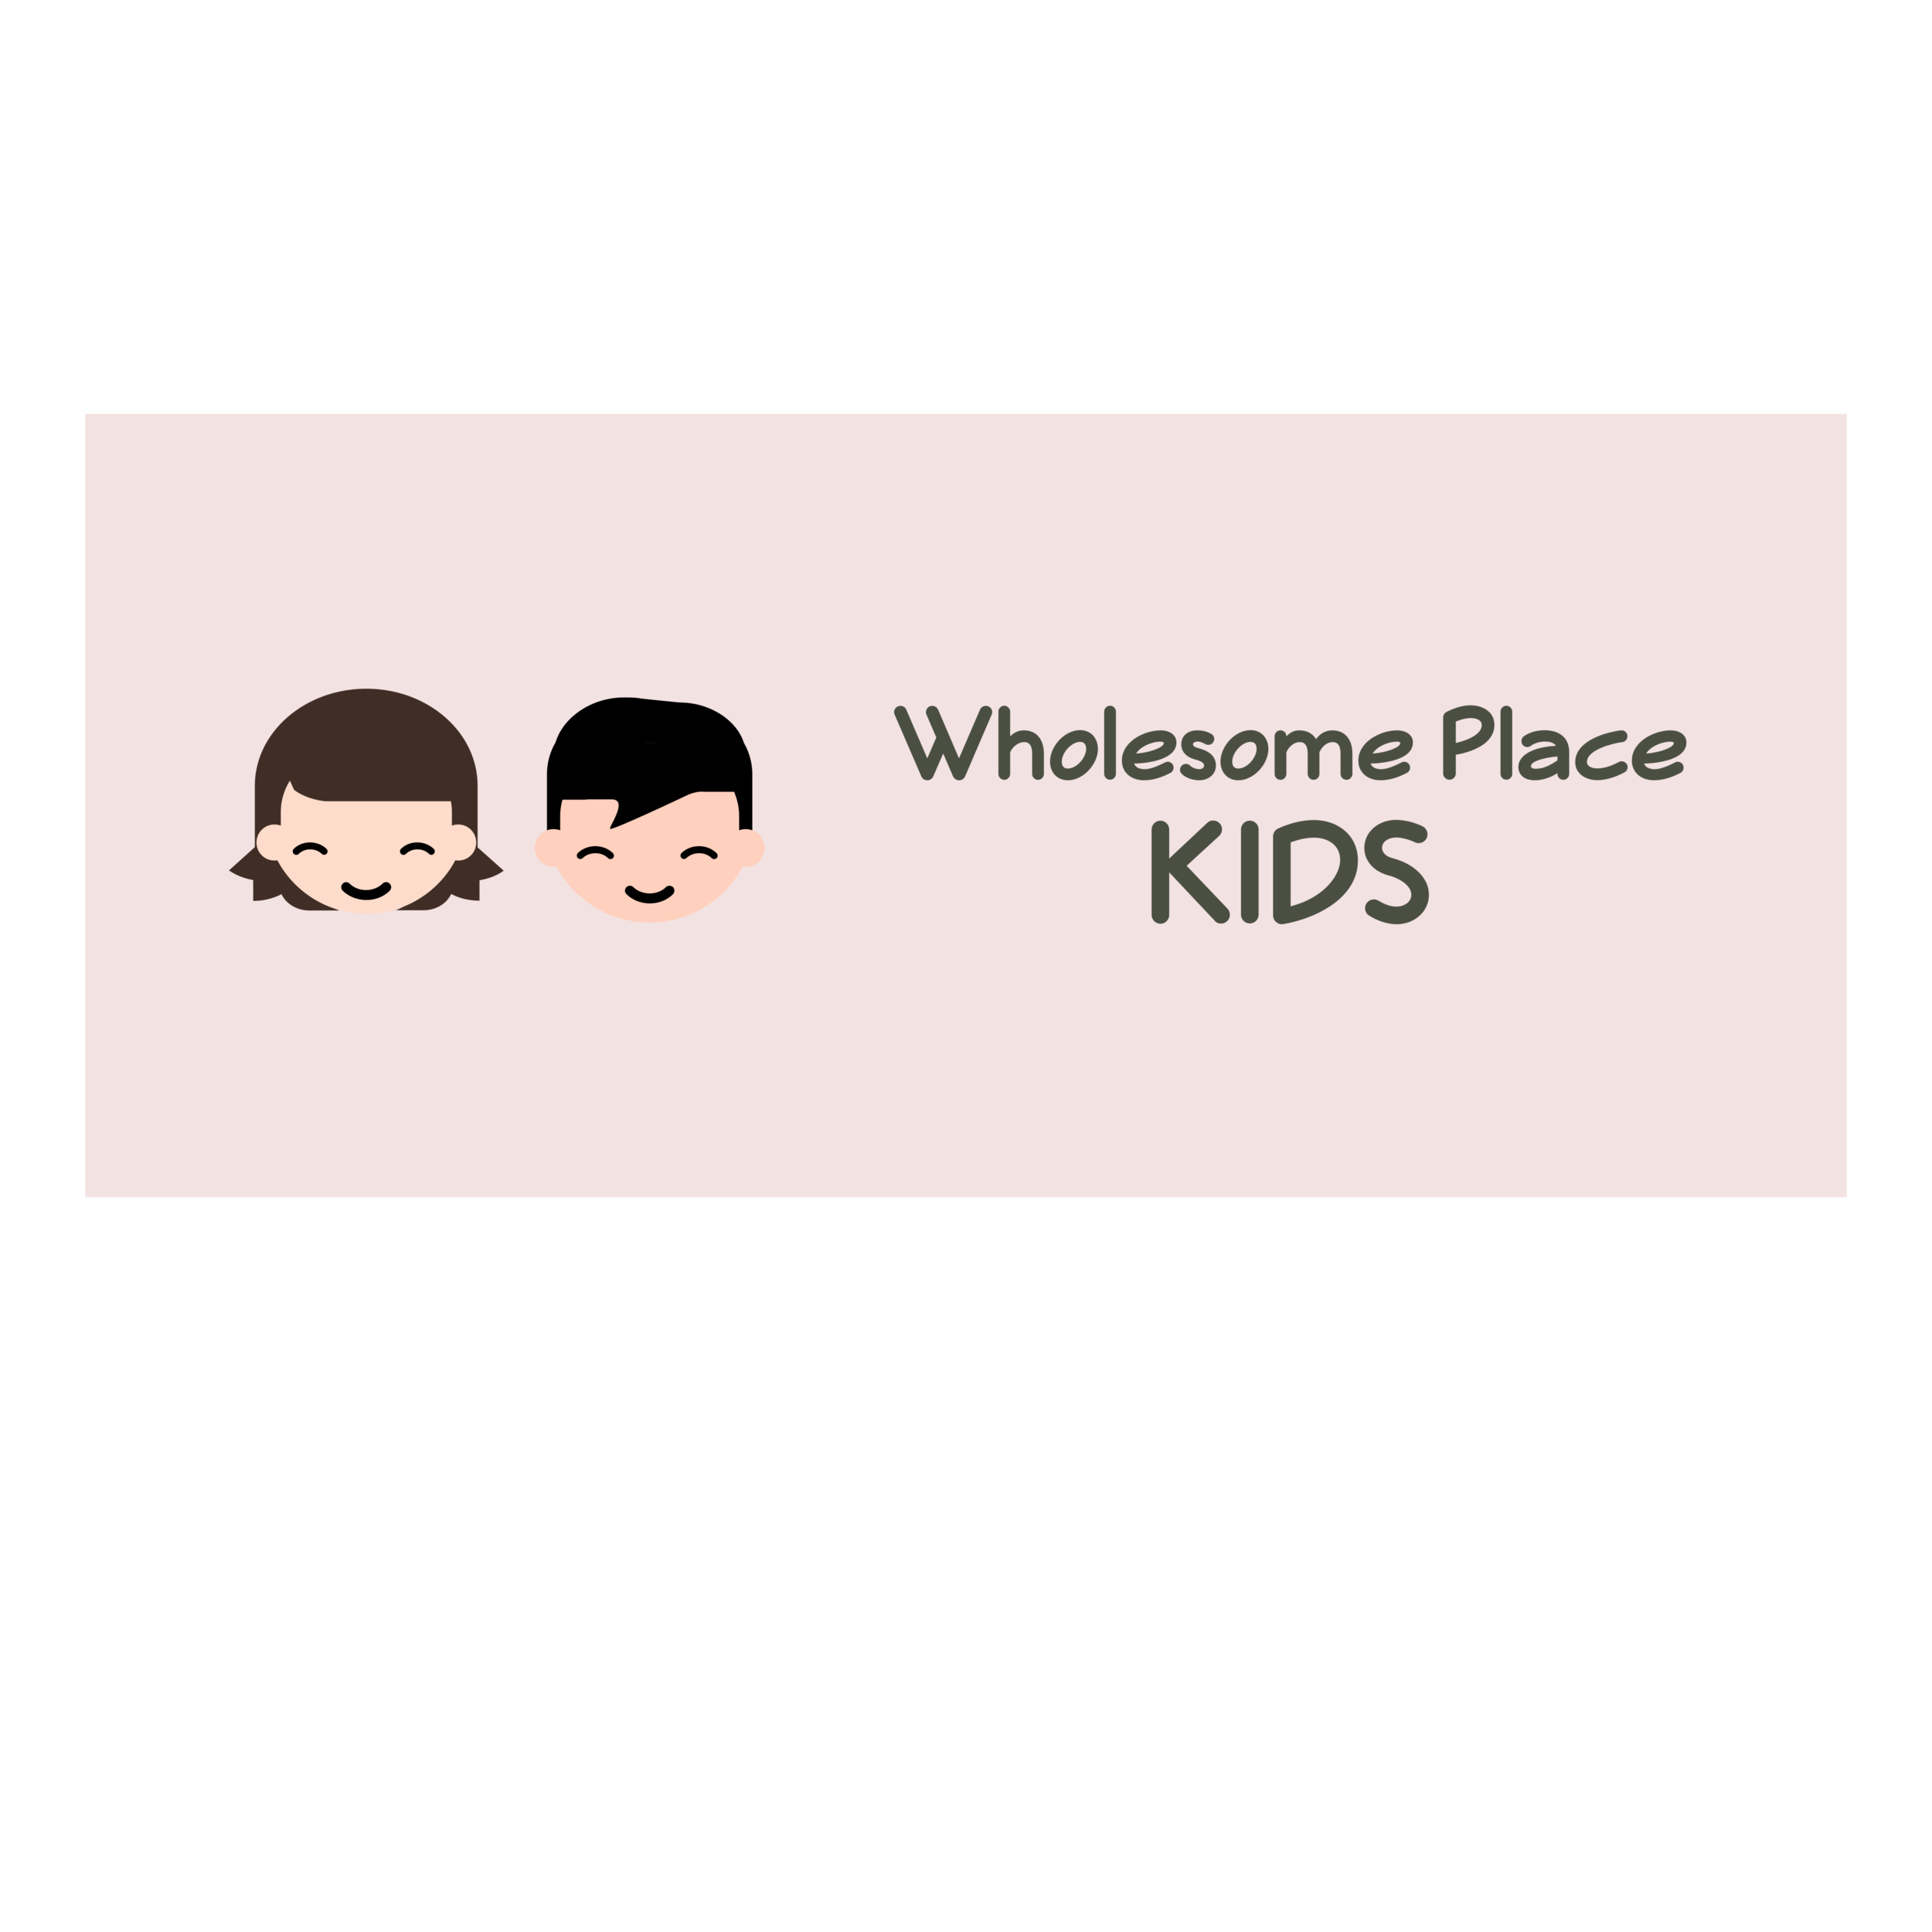 Wholesome Place Kids Youtube channel